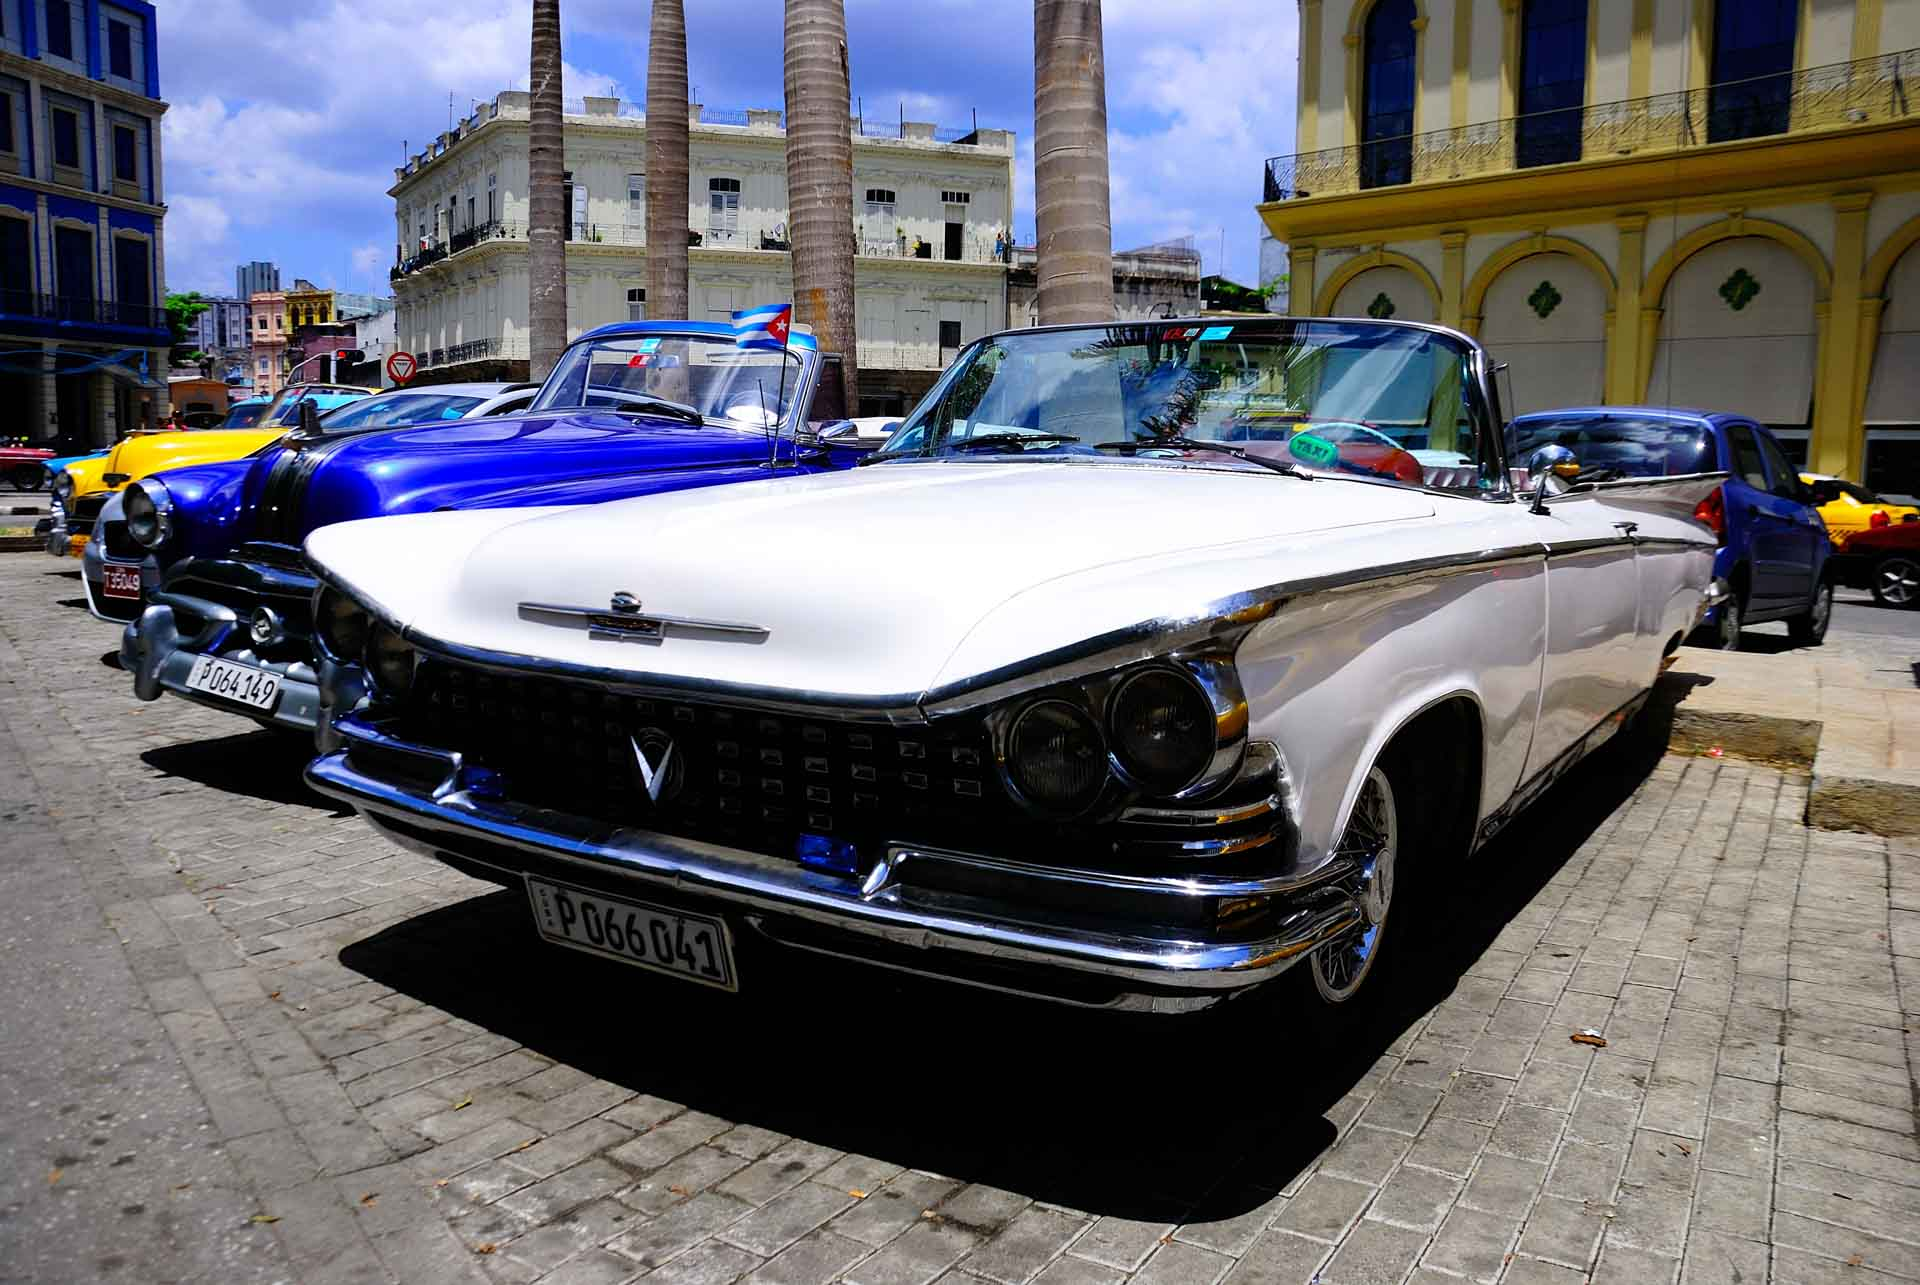 Havana Cuba Vintage Car 3, havana, cuba, pescart, photo blog, travel blog, blog, photo travel blog, enrico pescantini, pescantini